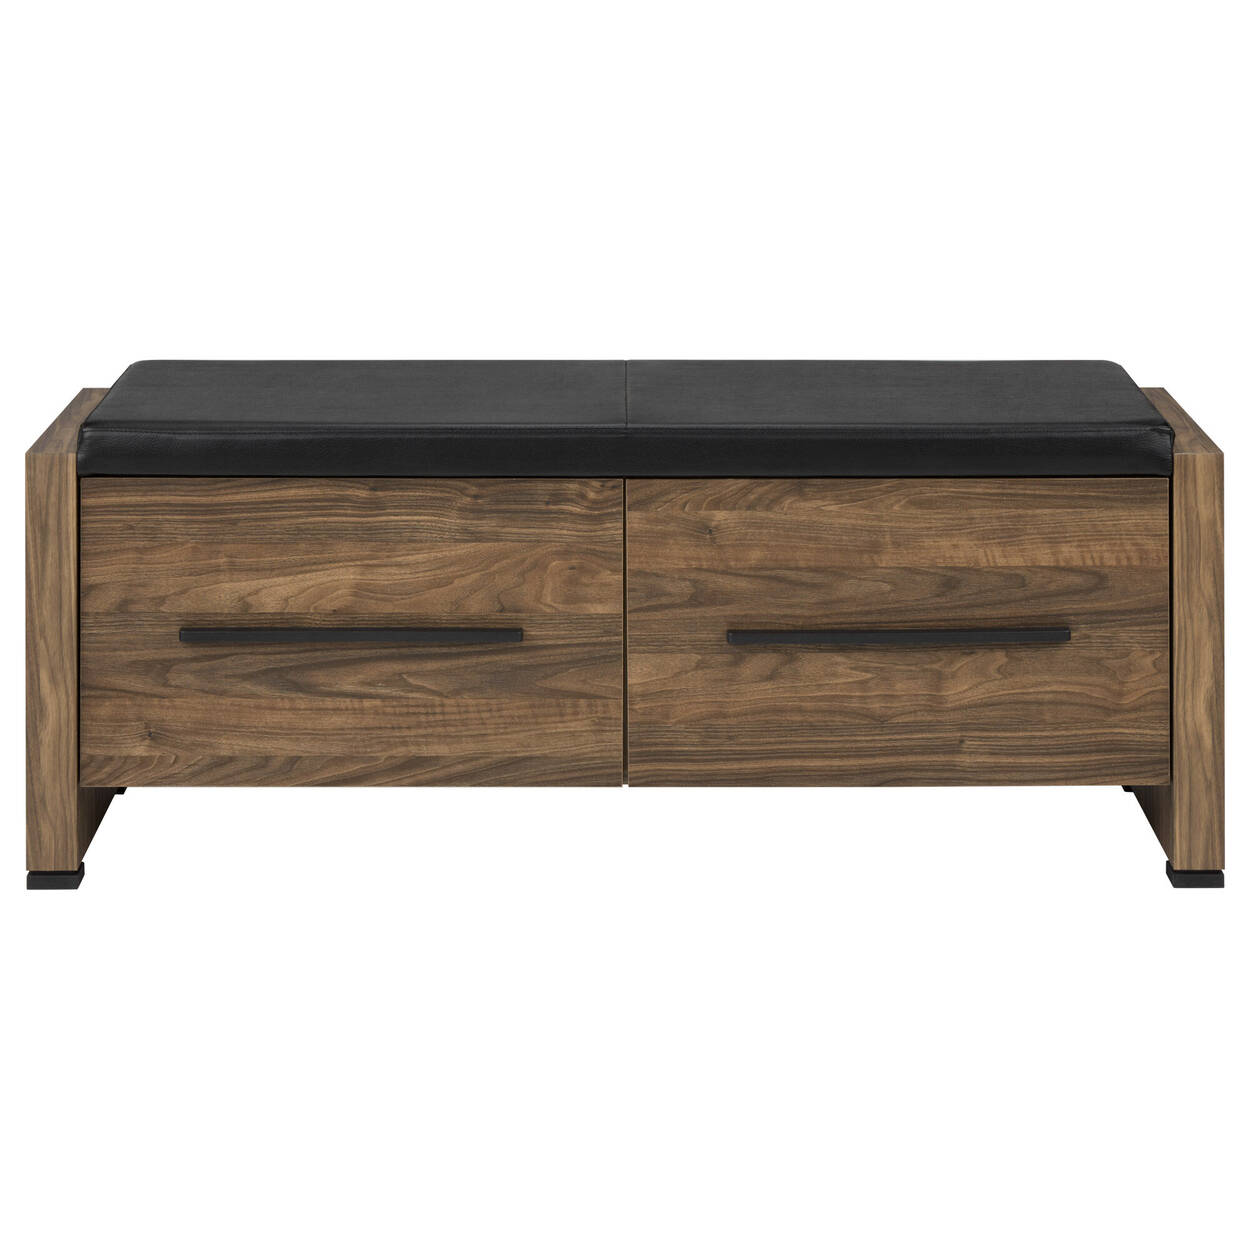 Faux Leather and Wood Storage Bench